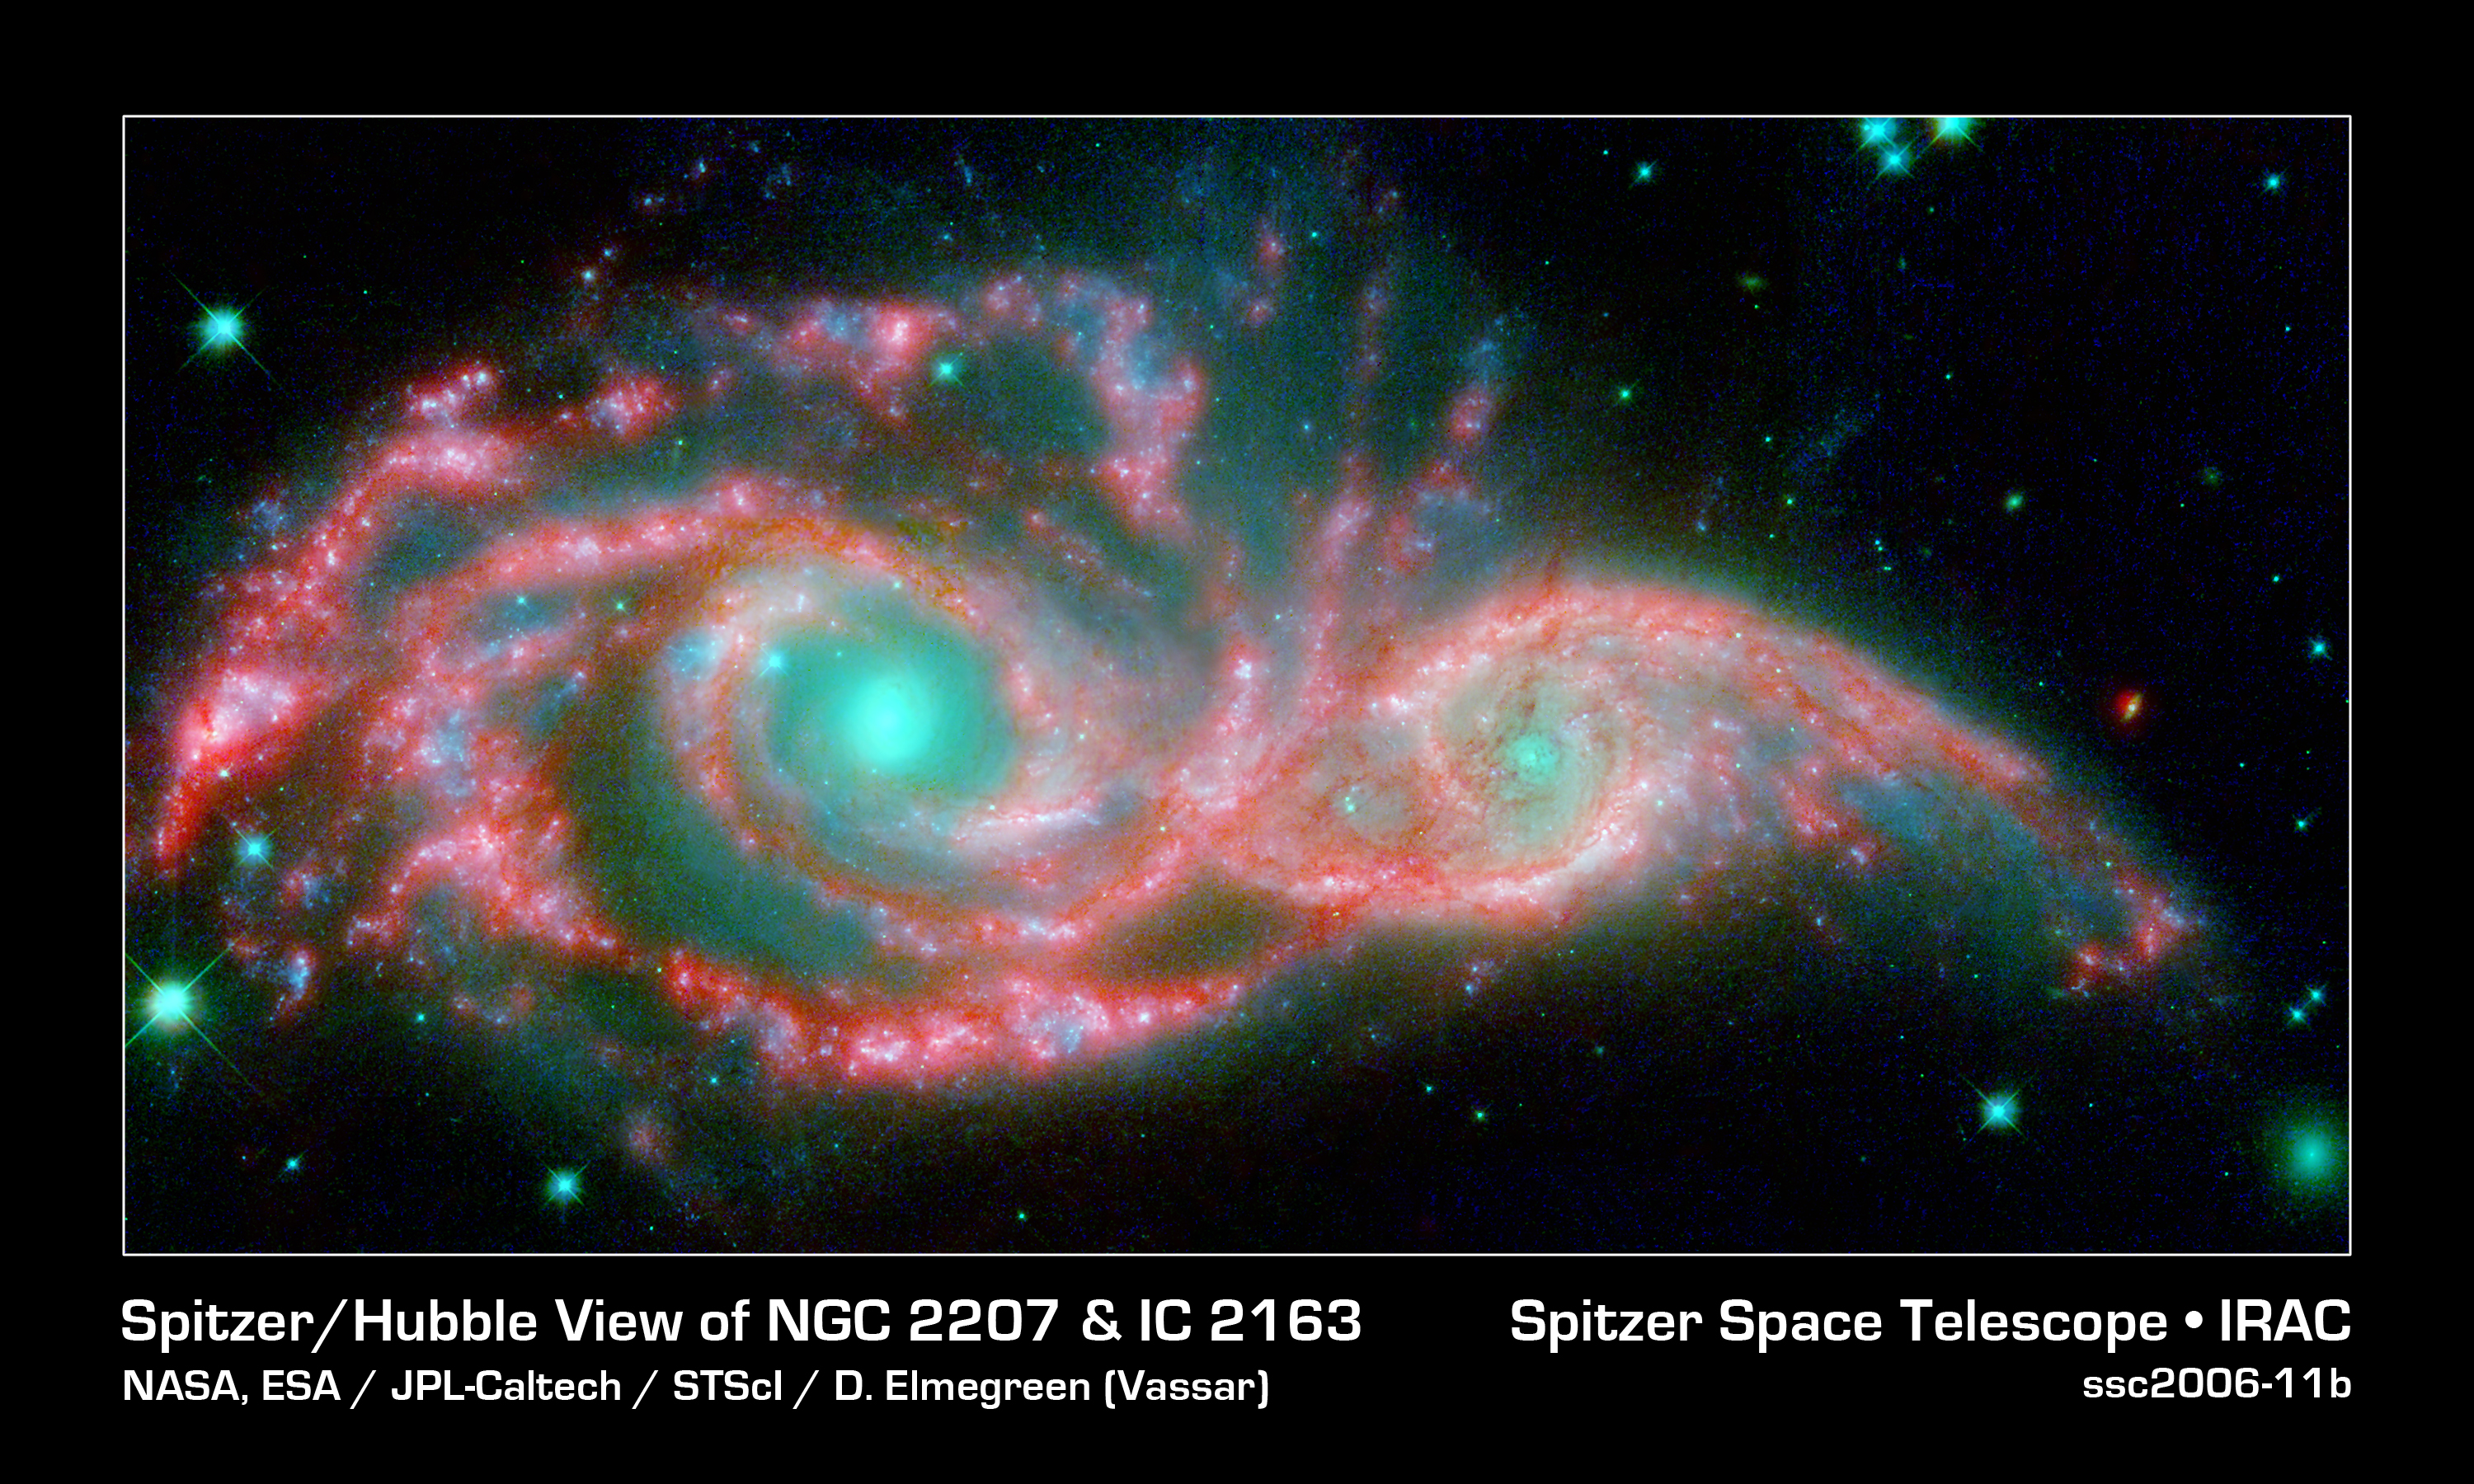 File:Spitzer, Hubble View of NGC 2207 & IC 2163.jpg